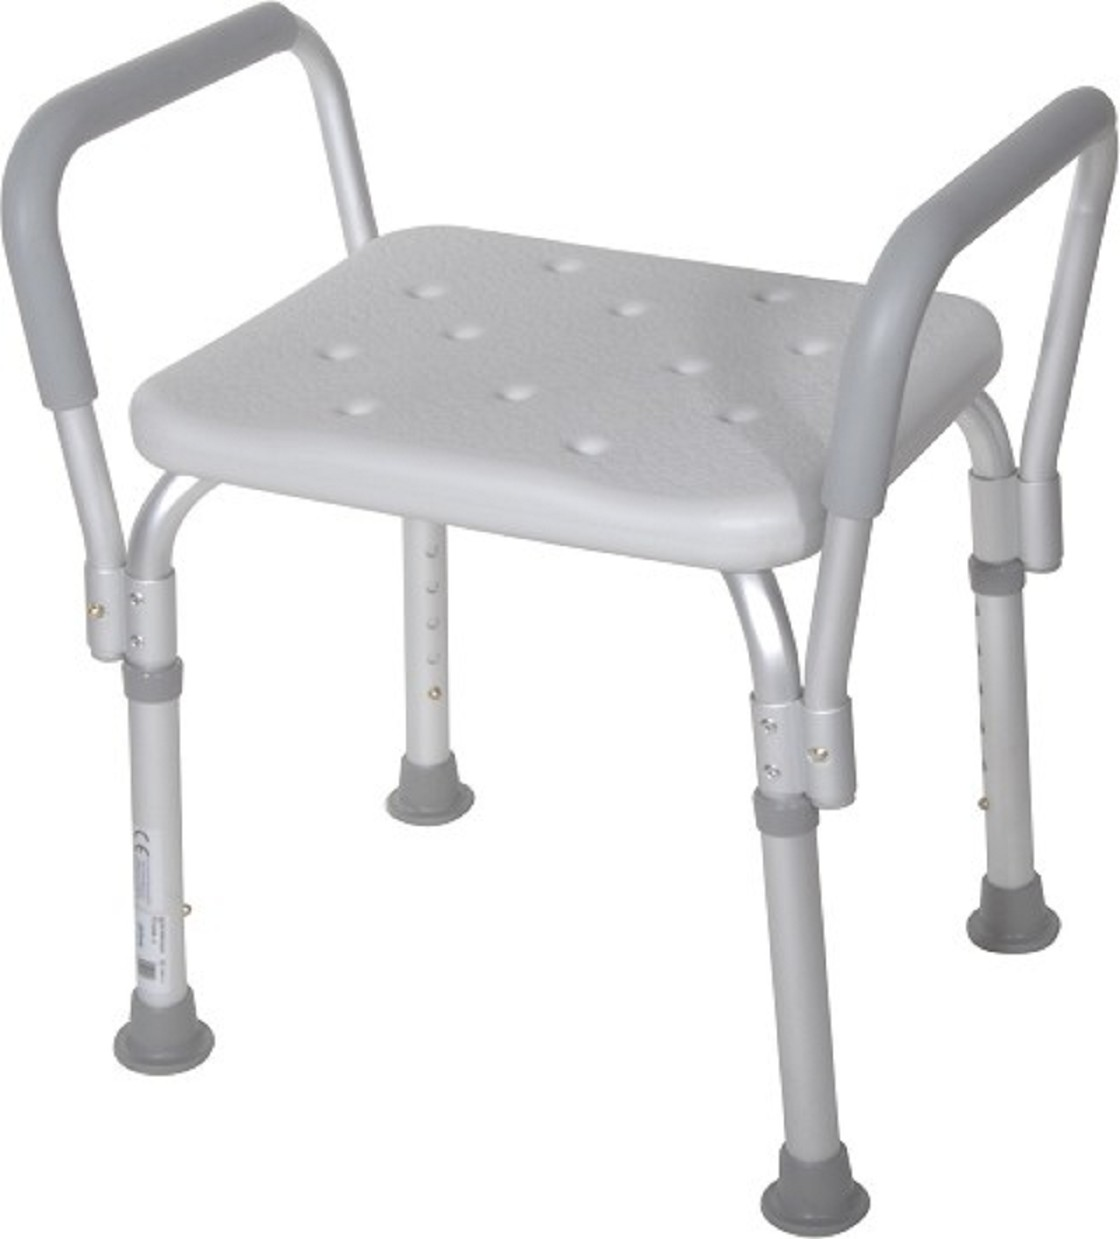 Knock Down Bath Bench With Padded Arms Free Shipping